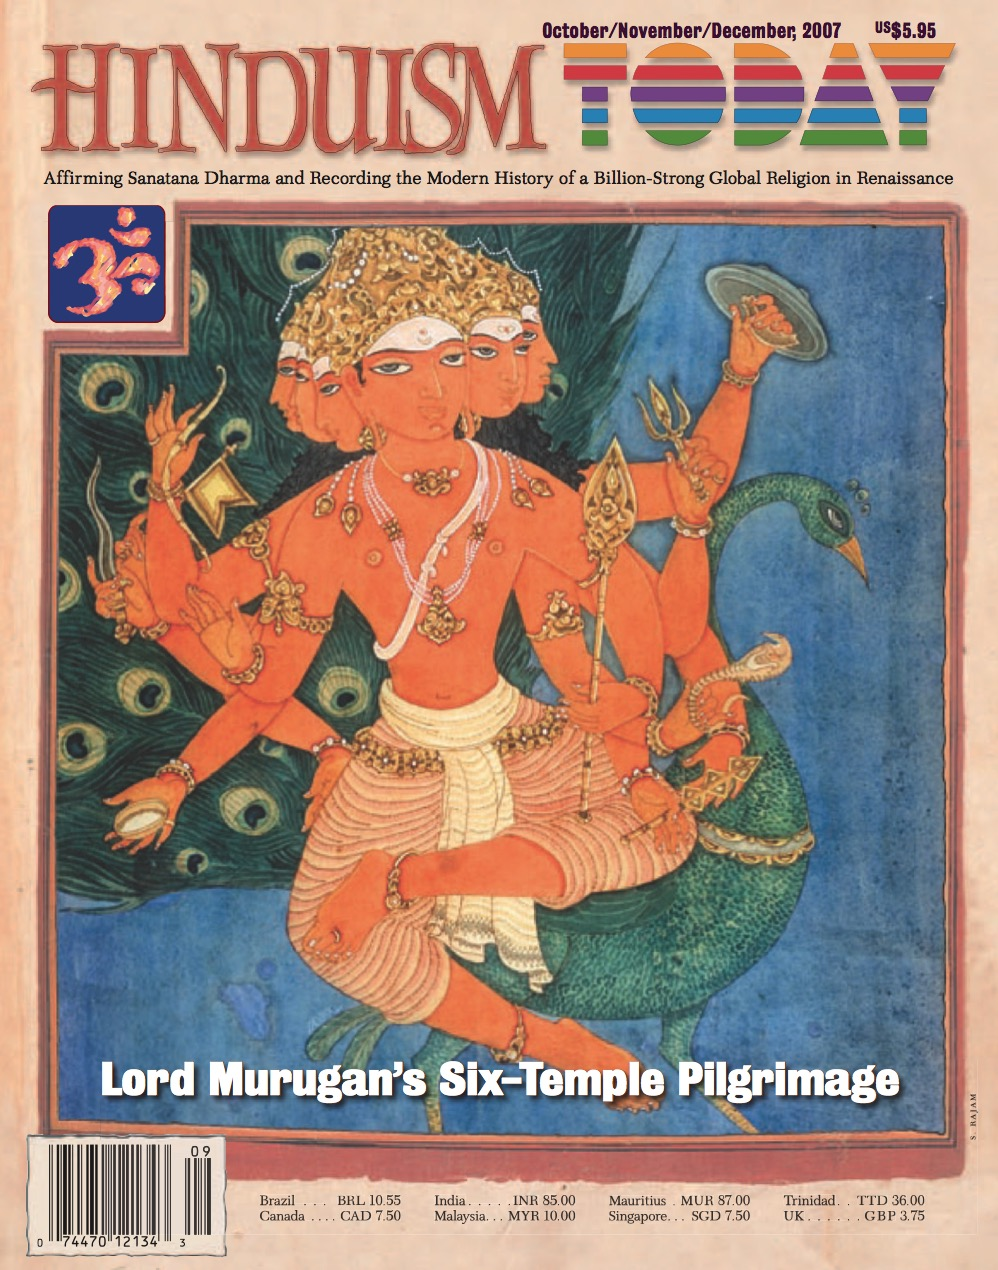 Hinduism Today Oct/Nov/Dec 2007